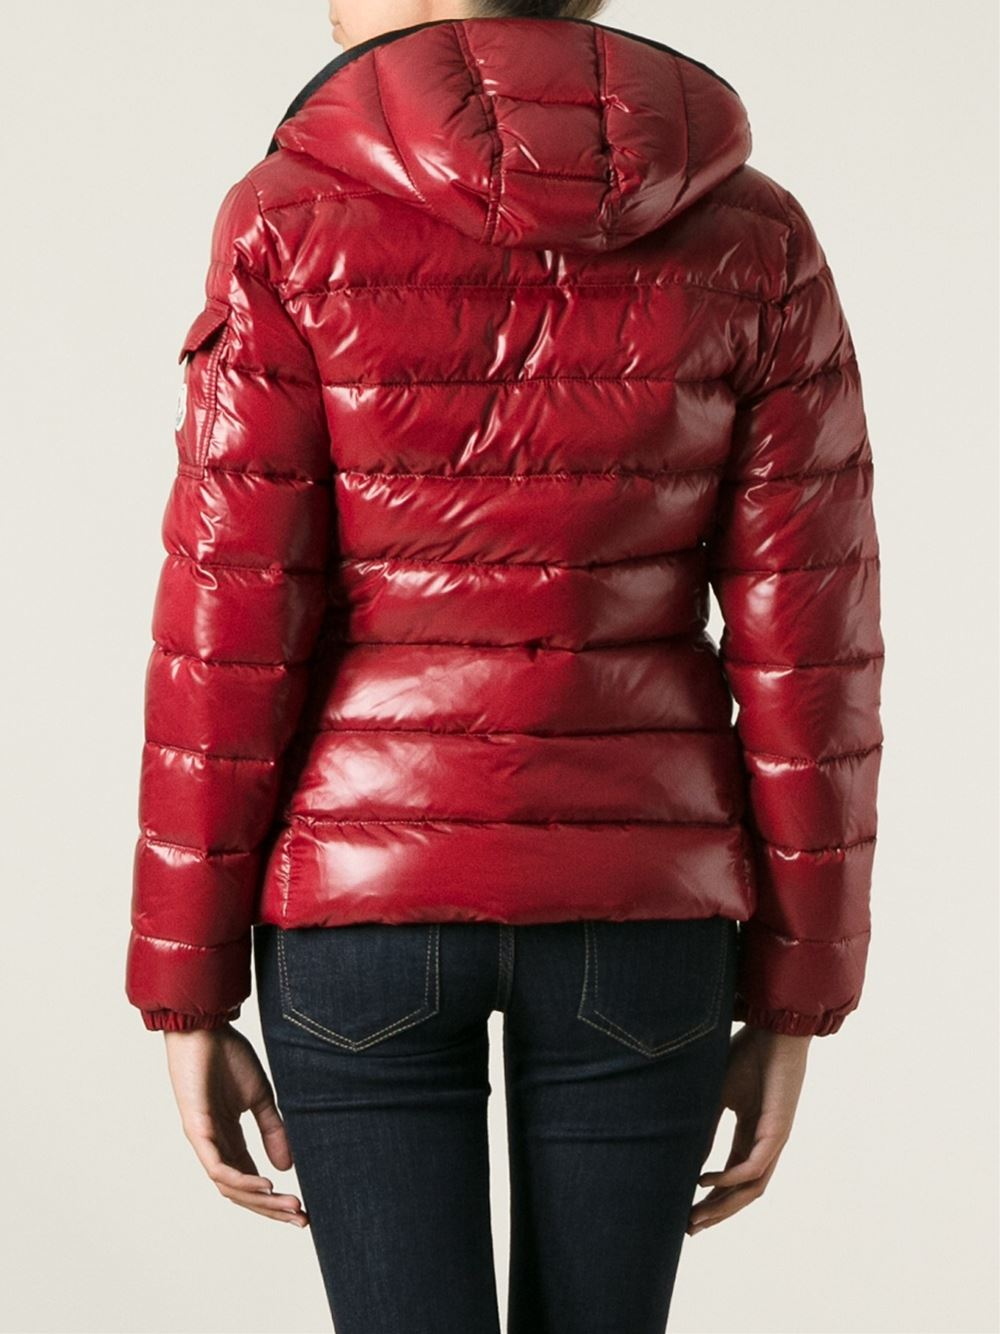 4da3e51335b2 Lyst - Moncler Bady Padded Jacket in Red